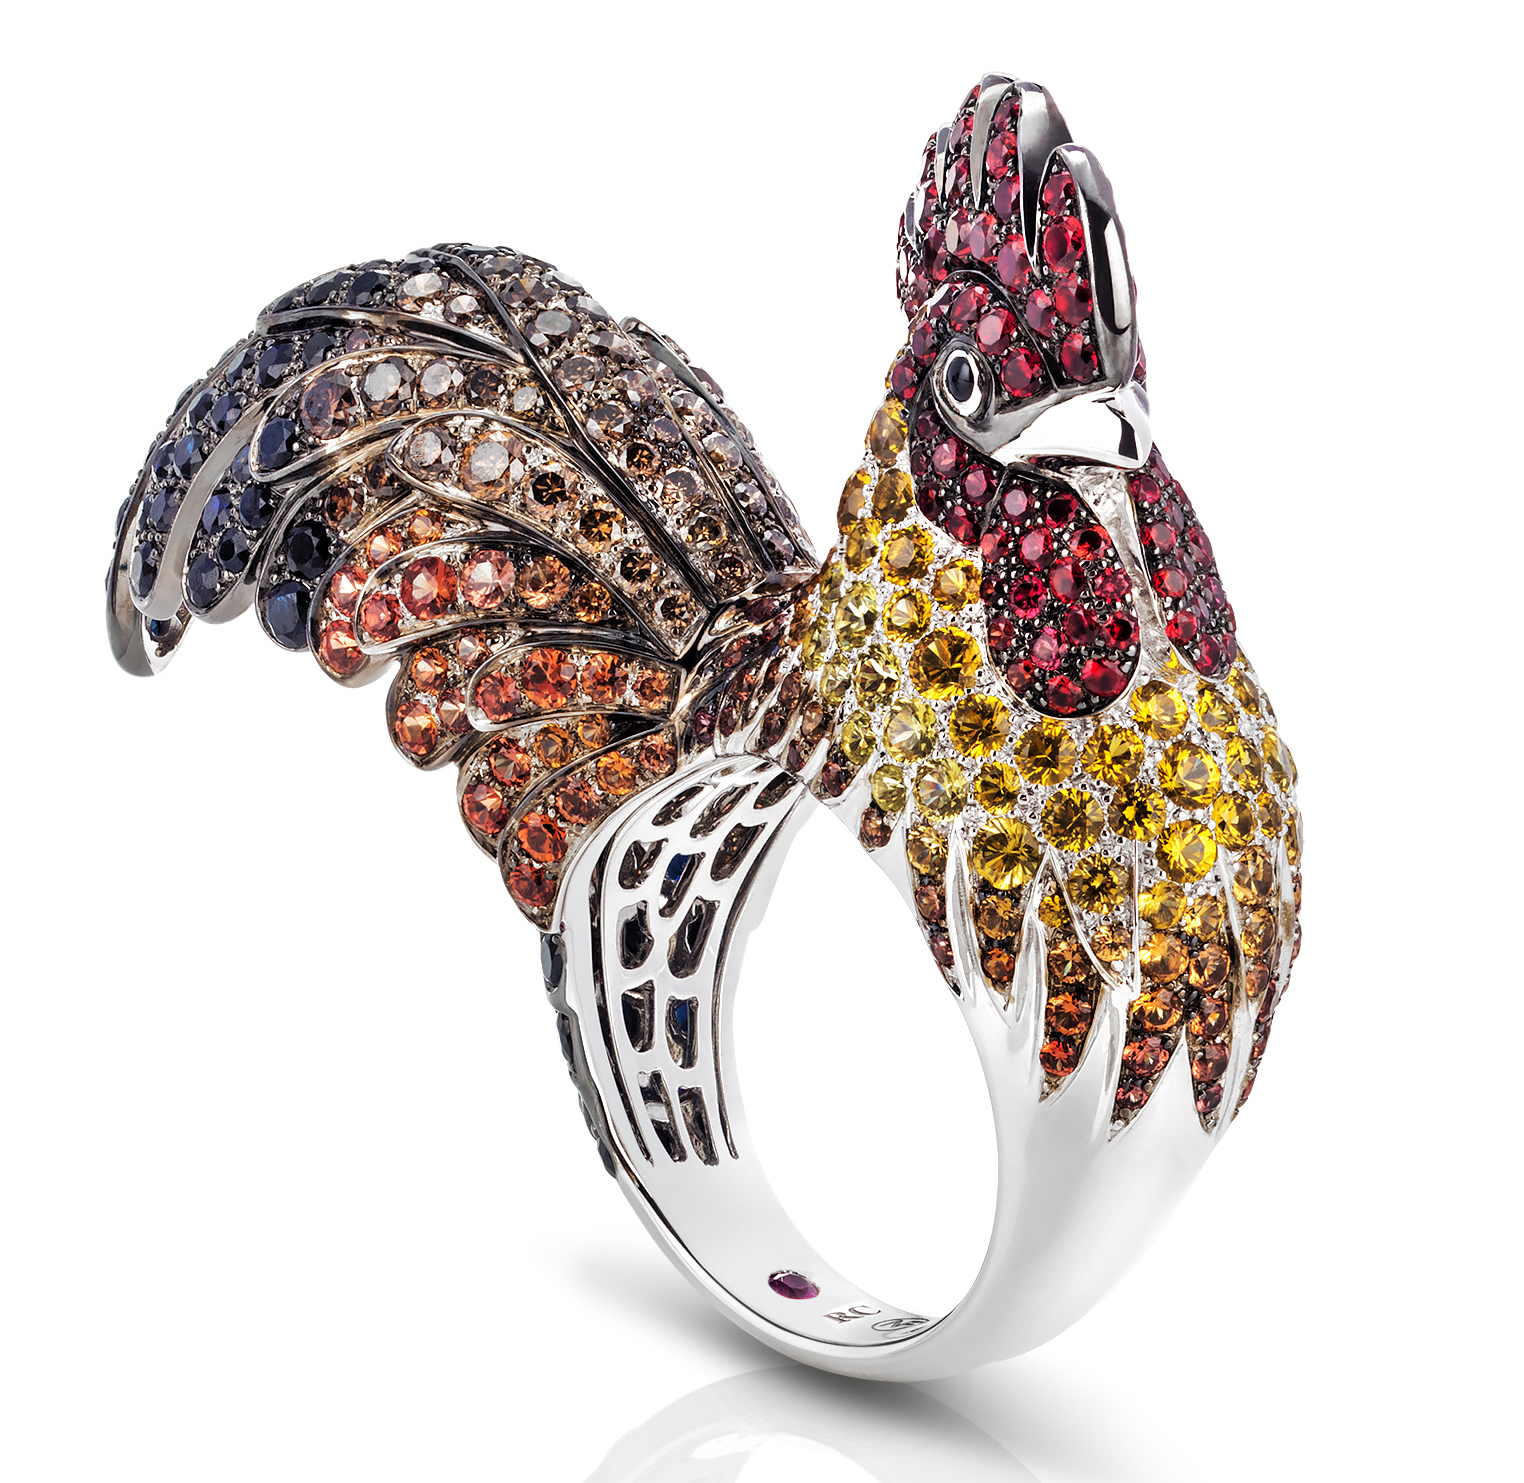 Roberto Coin Gallo rooster ring | JCK On Your Market